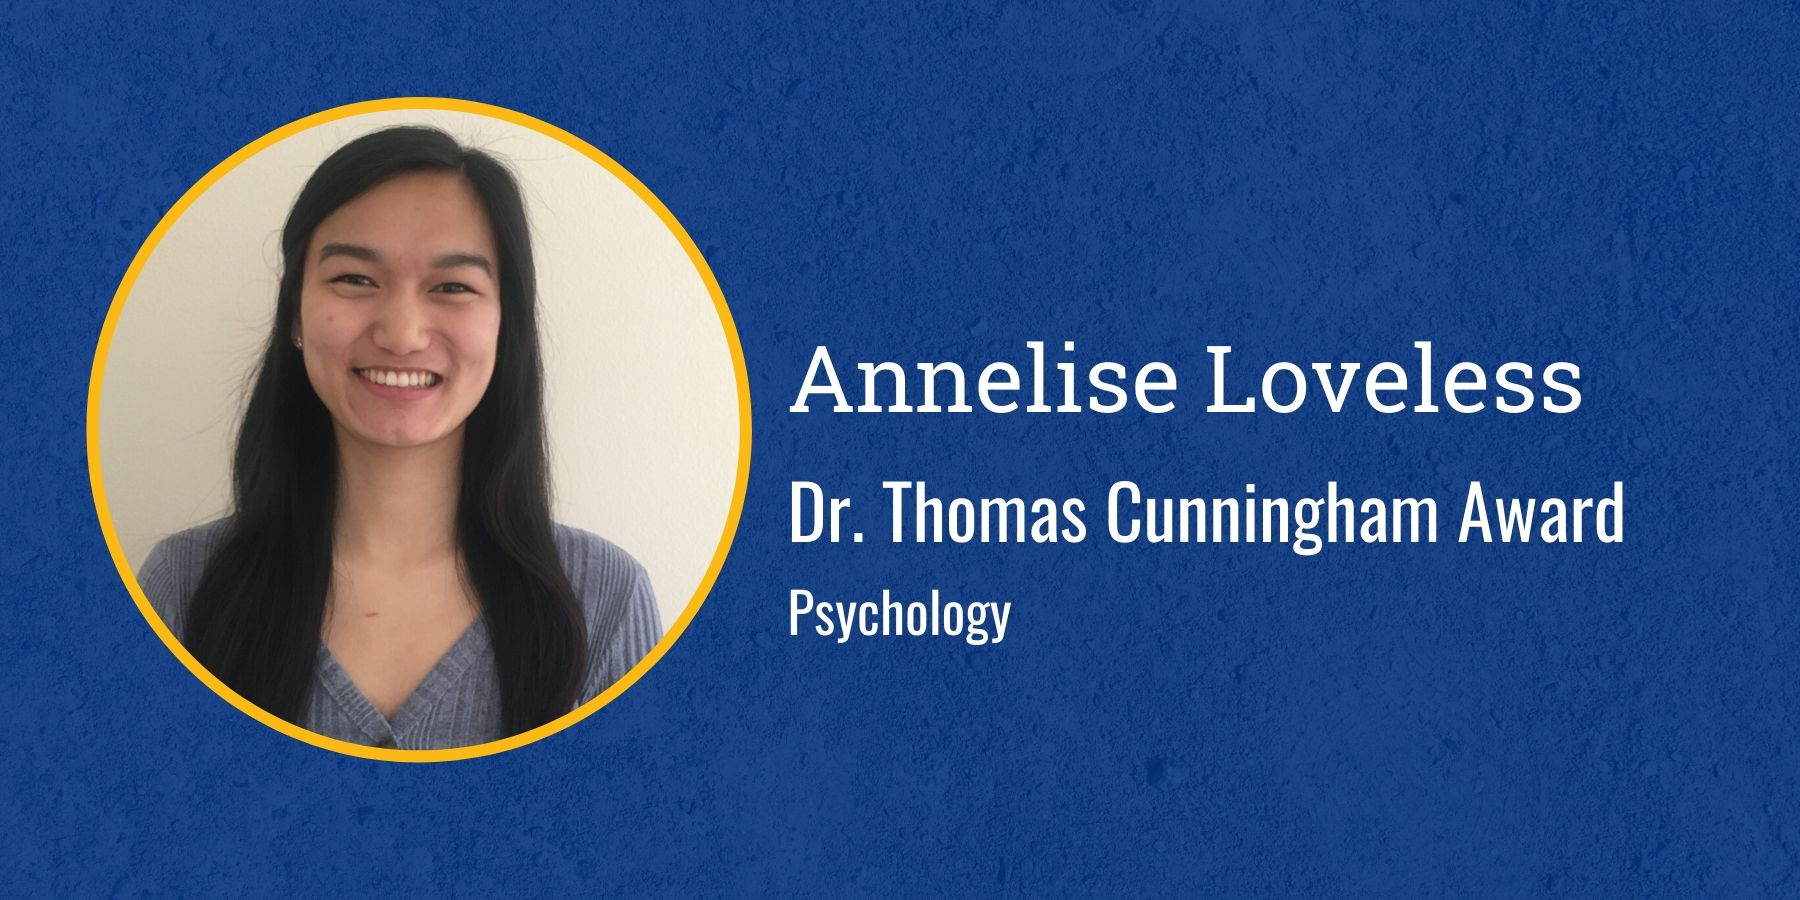 Photo of Annalise Loveless and text Dr. Thomas Cunningham award, Psychology